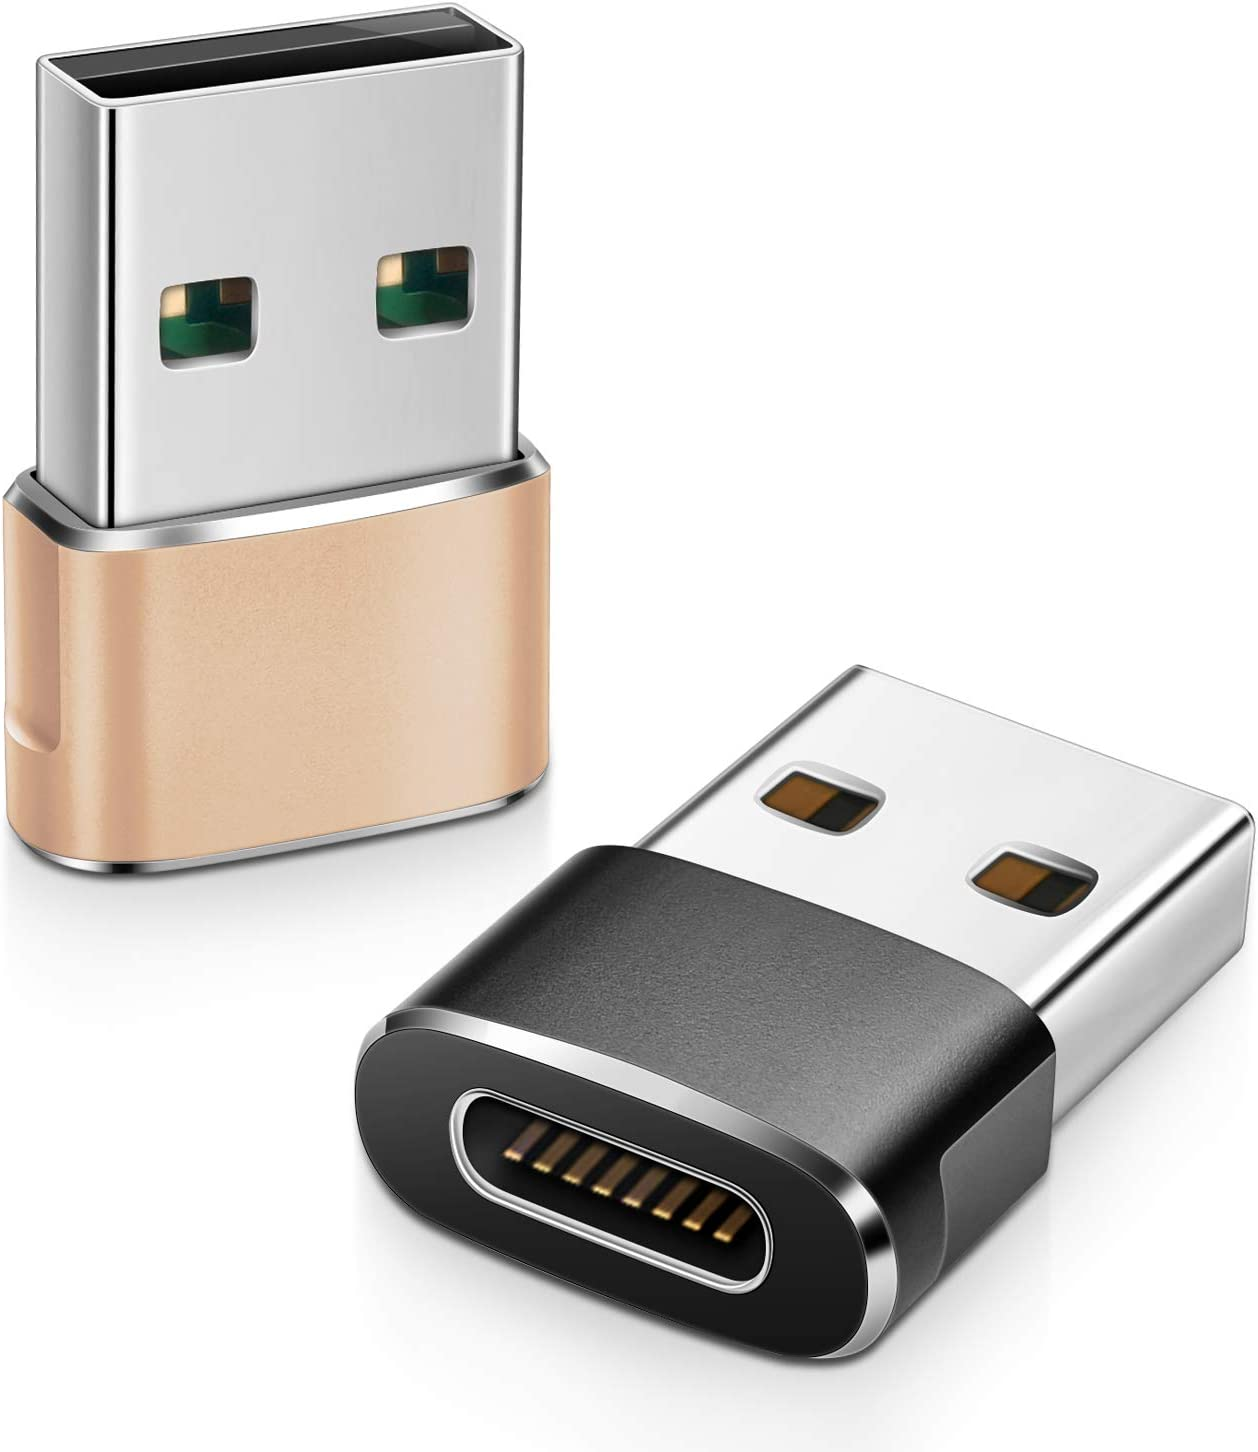 Elebase USB C Female to USB Male Adapter (2 Pack) (Upgraded Version),Type C to USB A Connector,Works with Laptops,Chargers,and More Devices with Standard USB A Interface (Black&Gold)